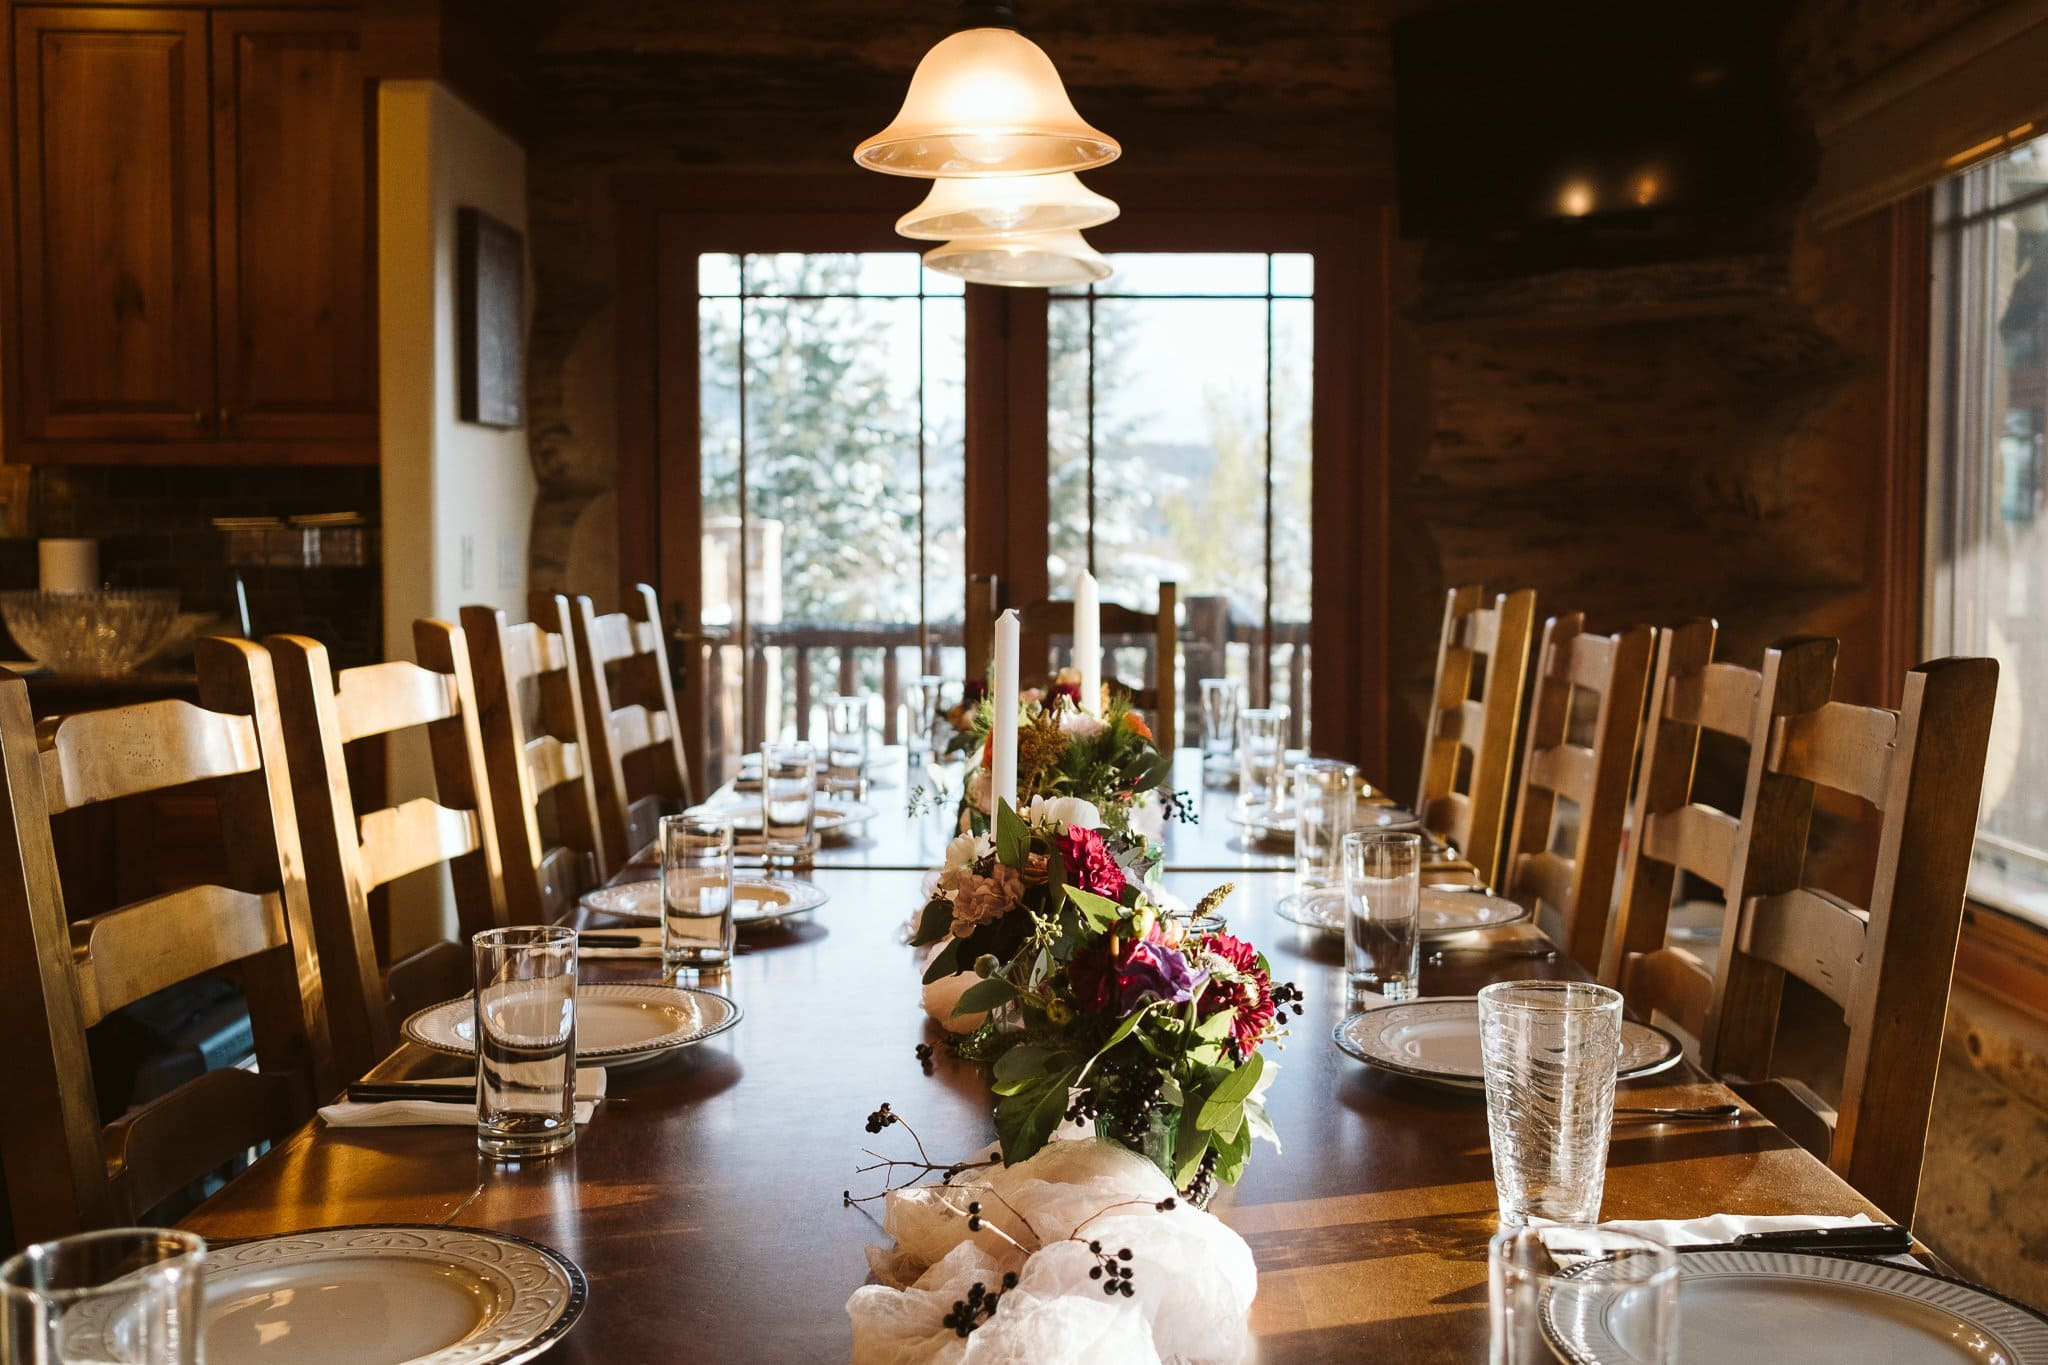 Decorated dining table for intimate elopement reception at private mountain home in the Colorado mountains